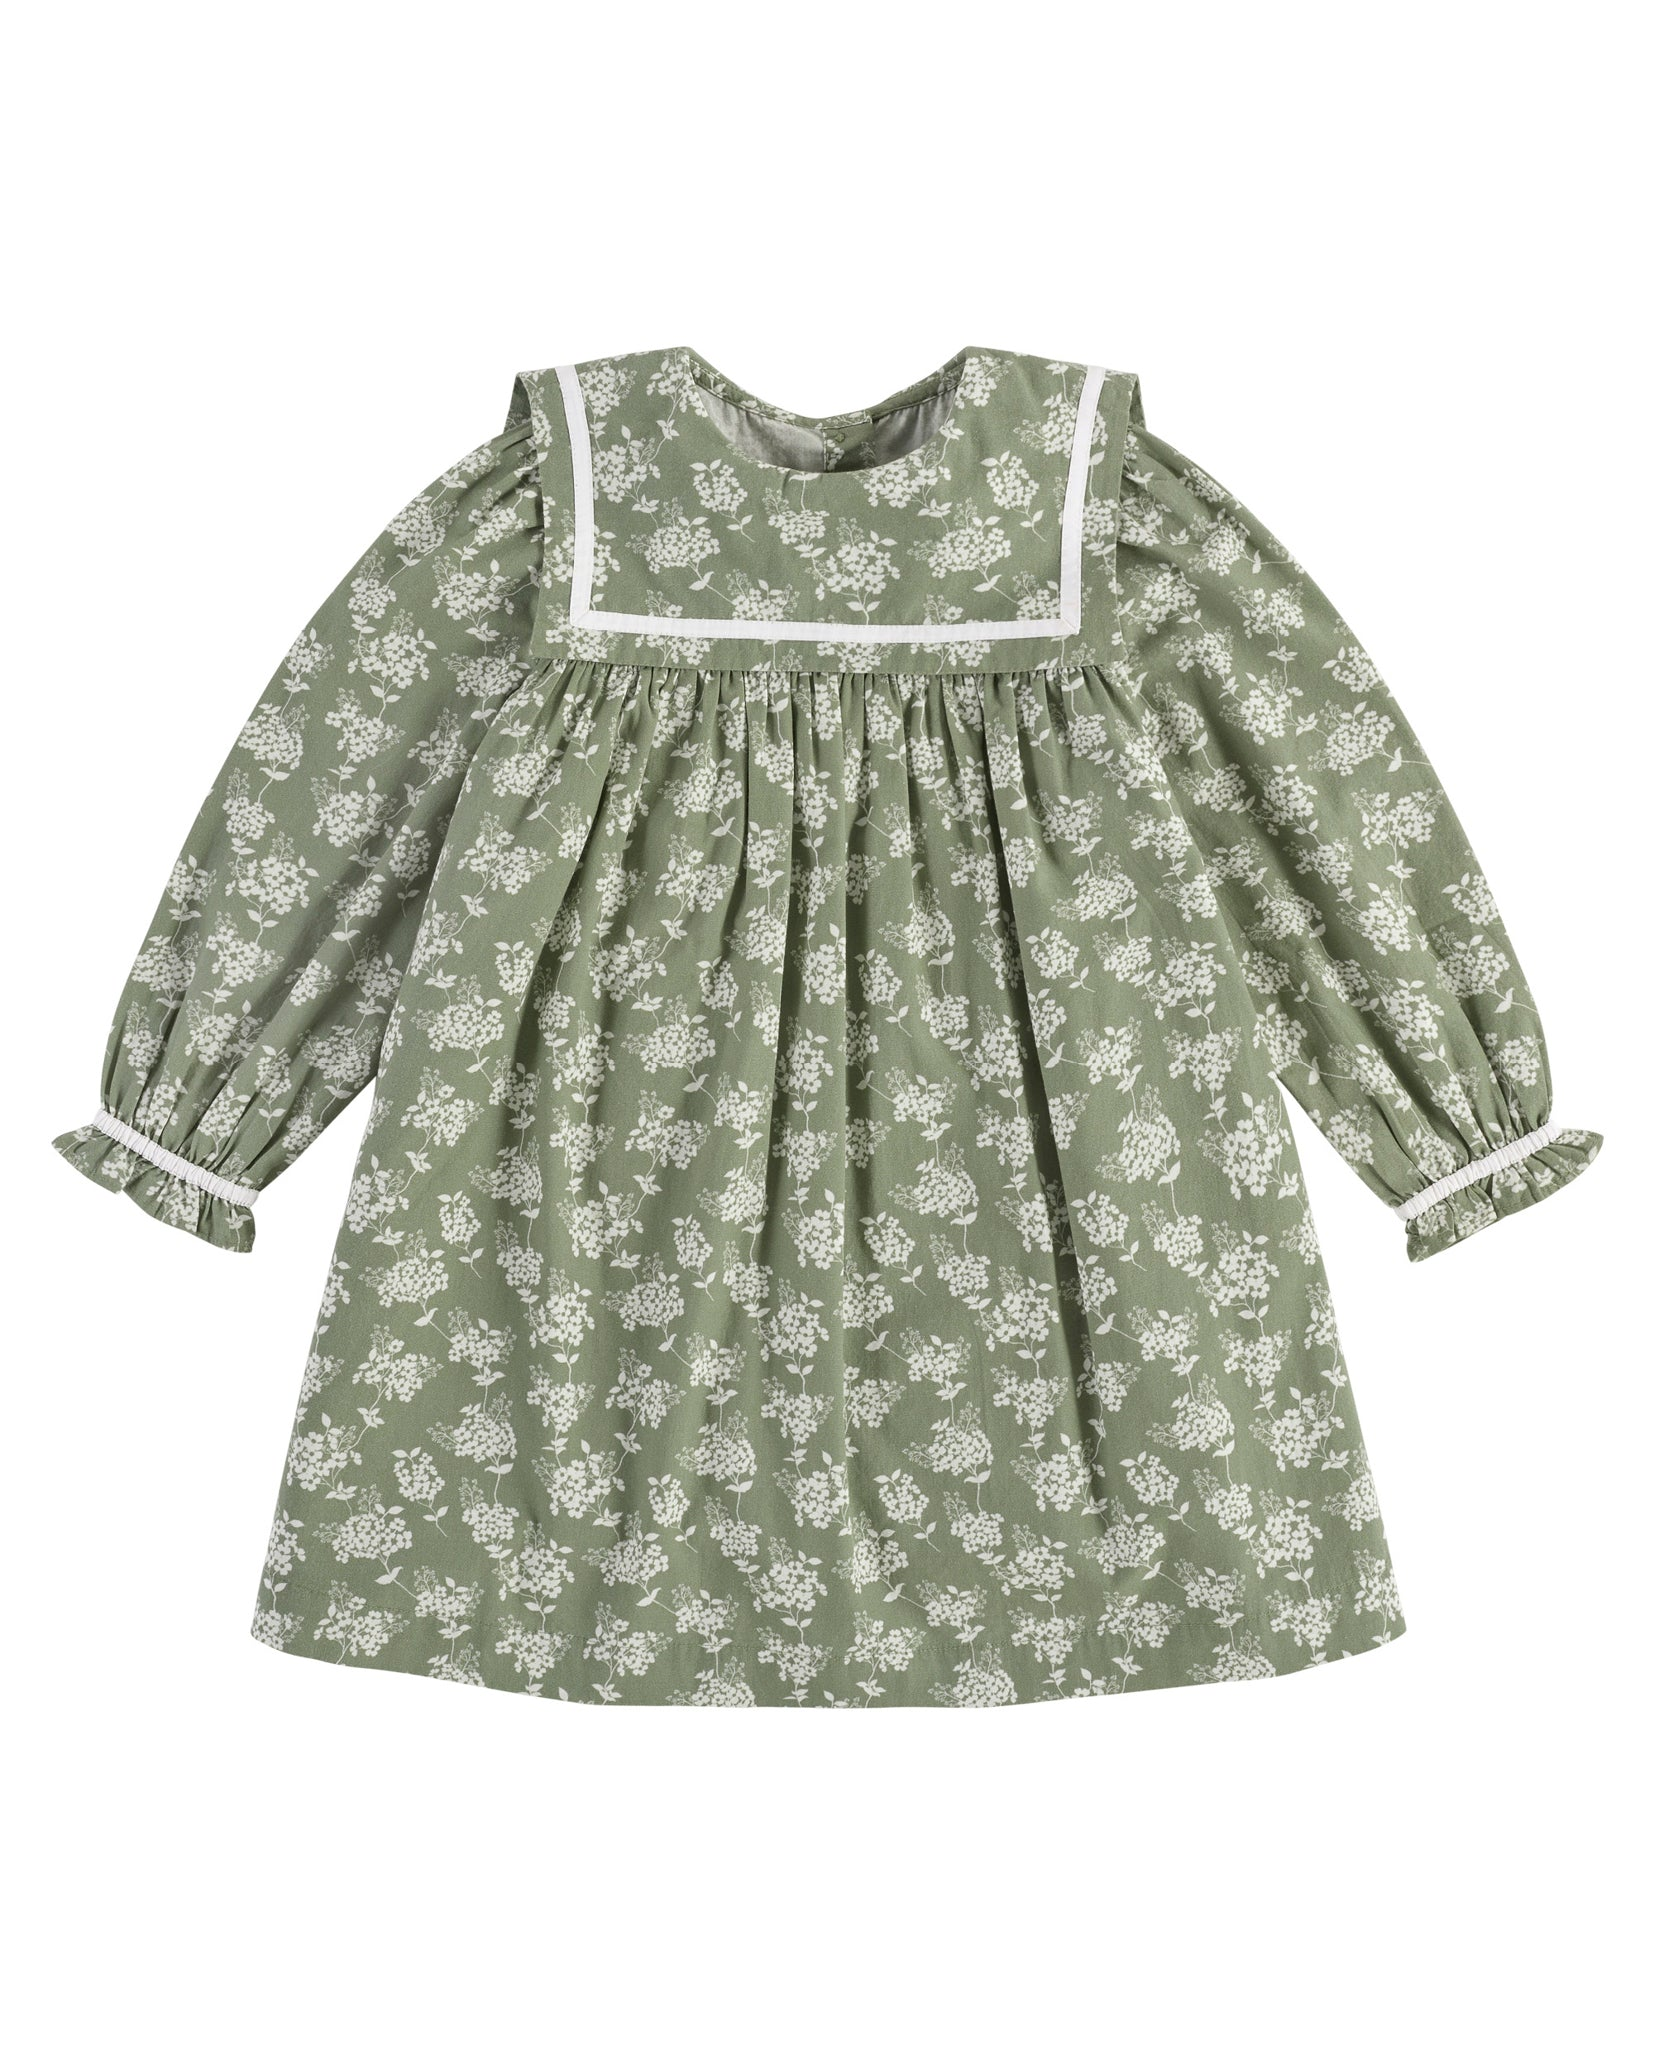 Jemima Sailor Dress - Green Hydrangea Floral